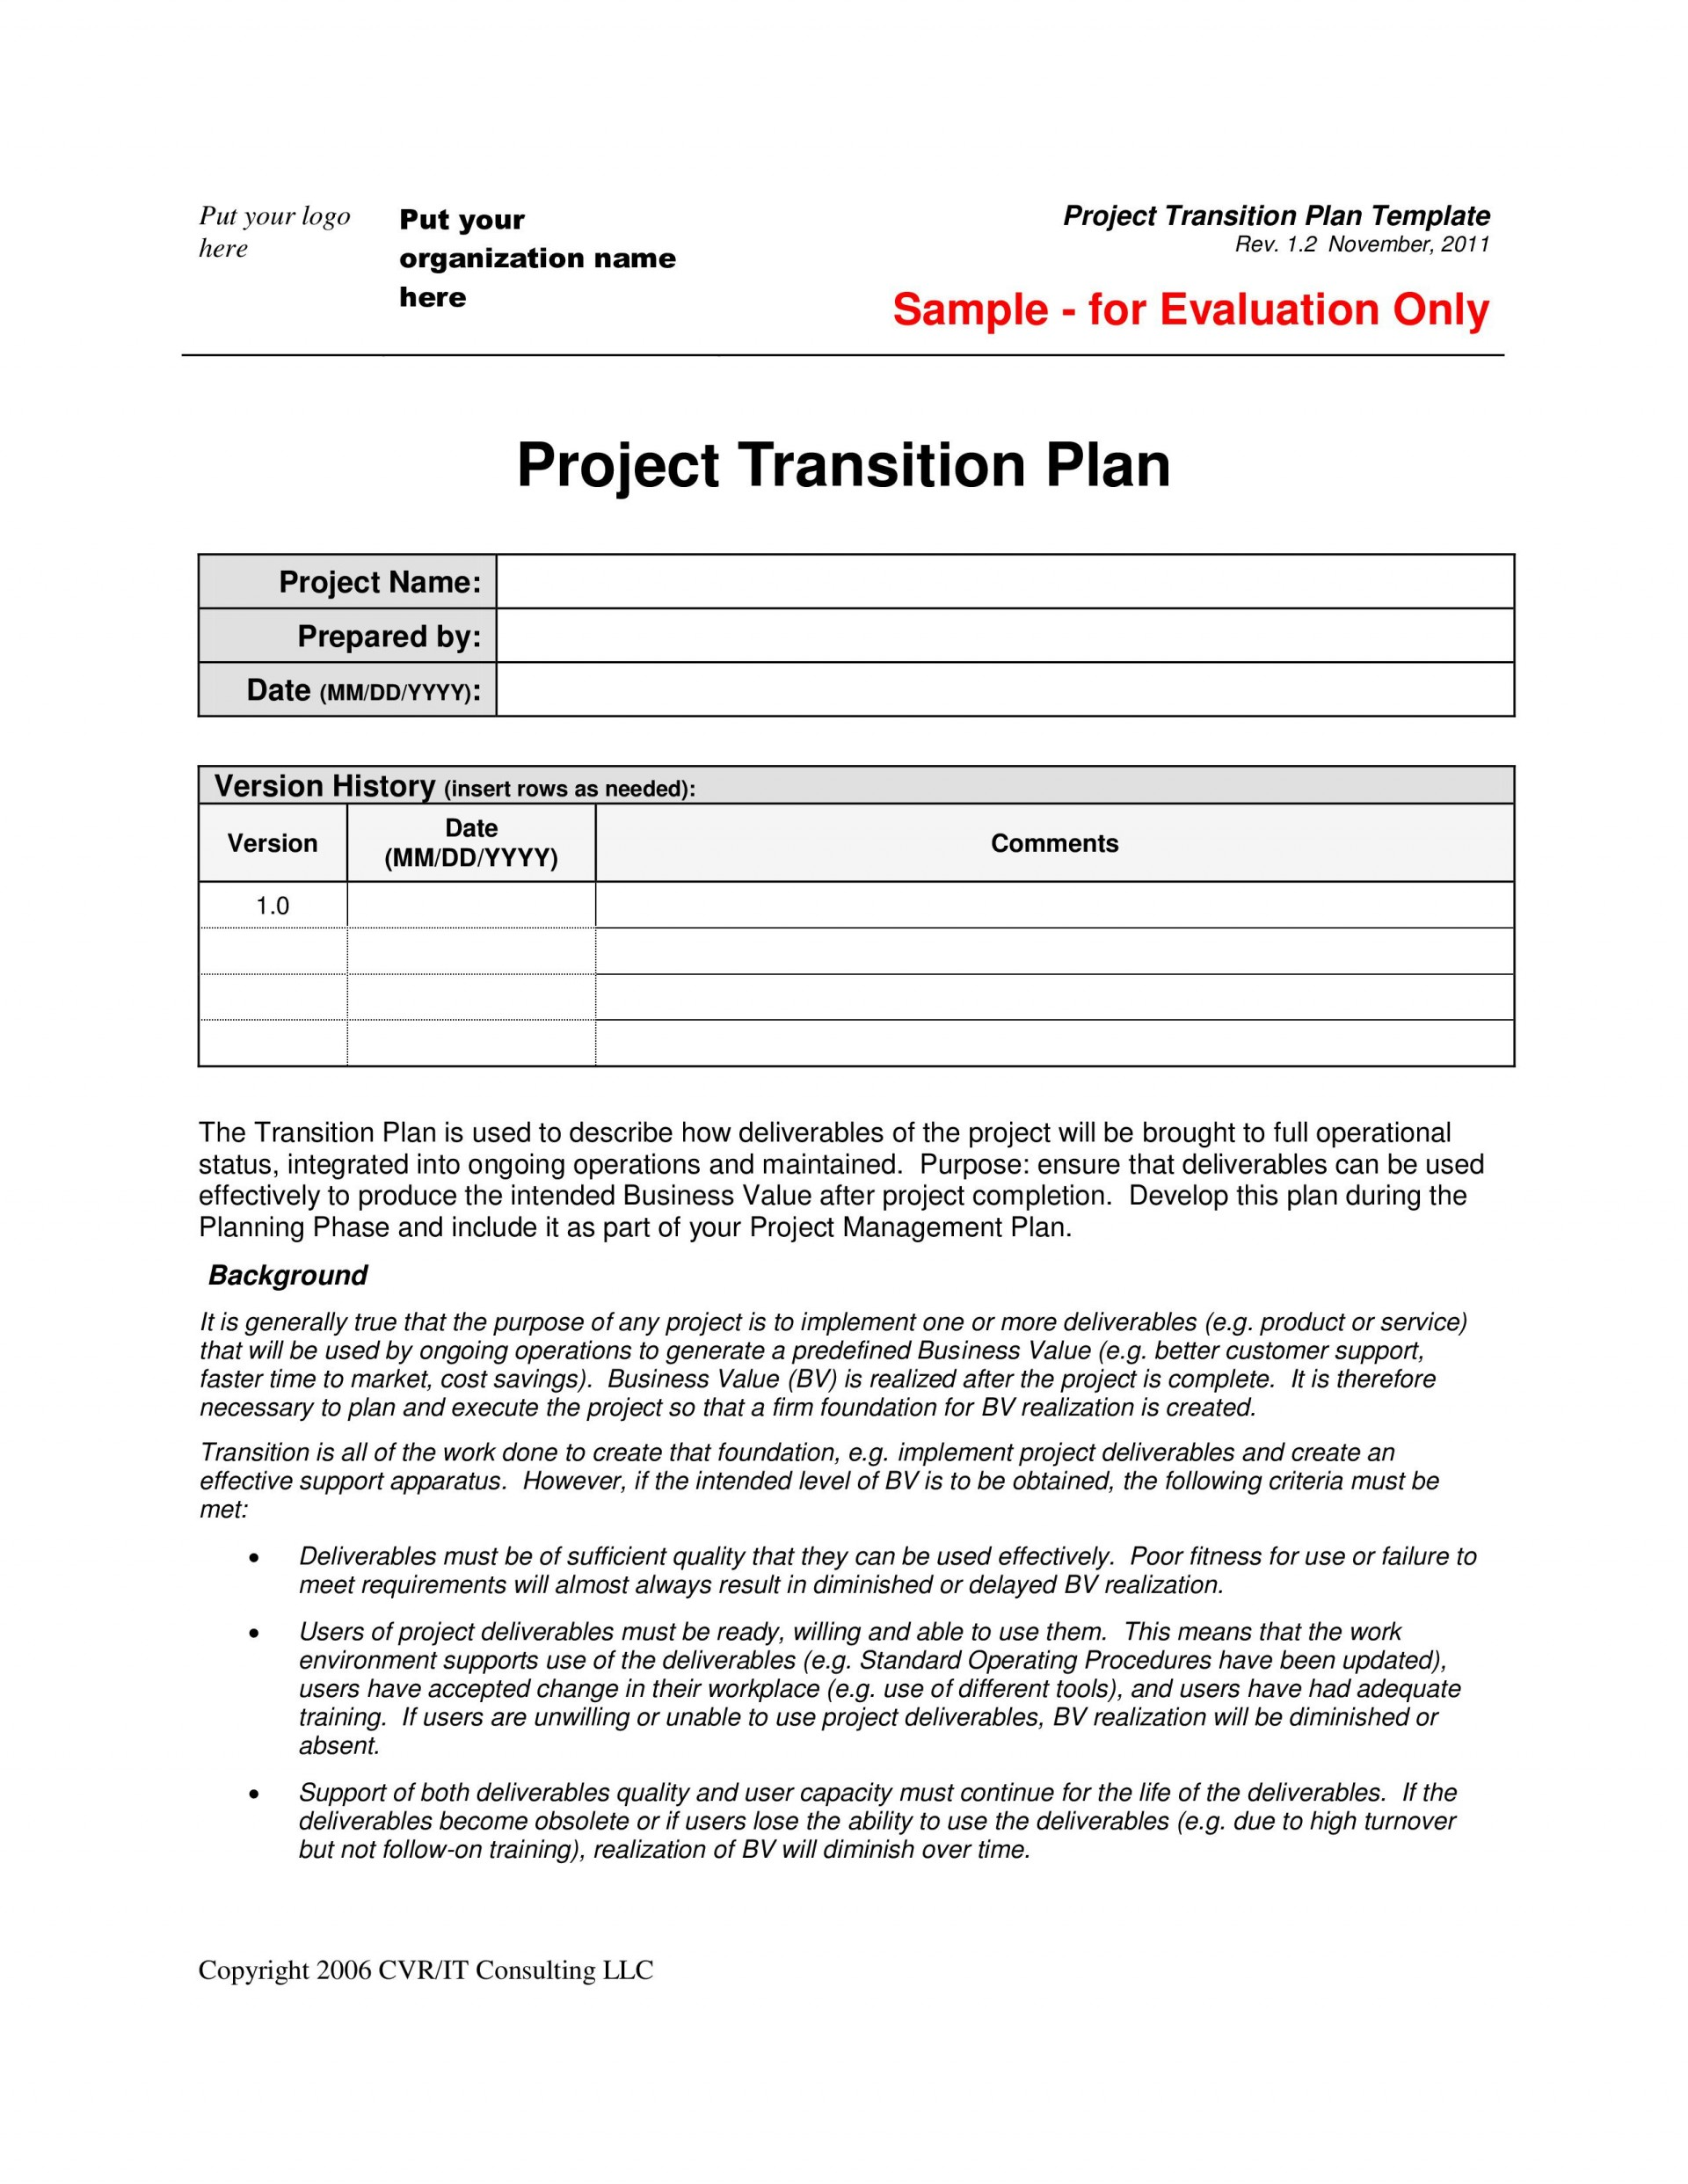 003 Fearsome Project Transition Plan Template High Resolution  Excel Download Software Sample1920